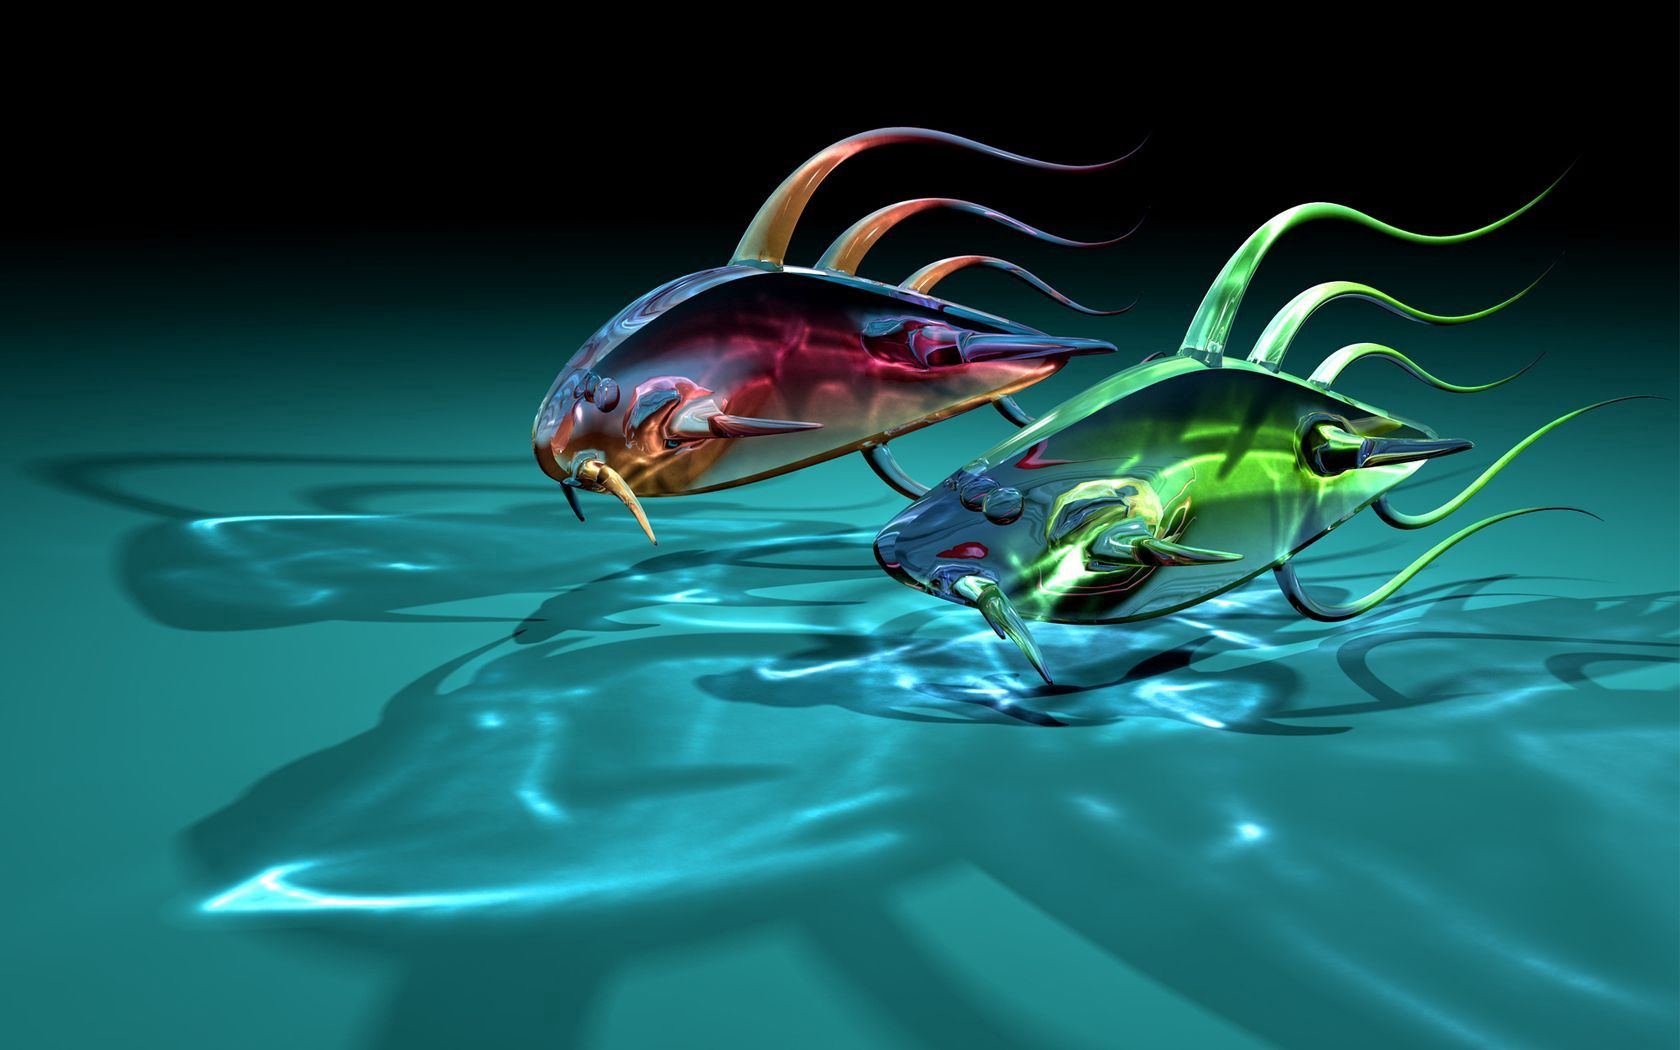 120608 download wallpaper Art, Fishes, Transparent, 3D, Glass, Shadows, Fish, Two screensavers and pictures for free